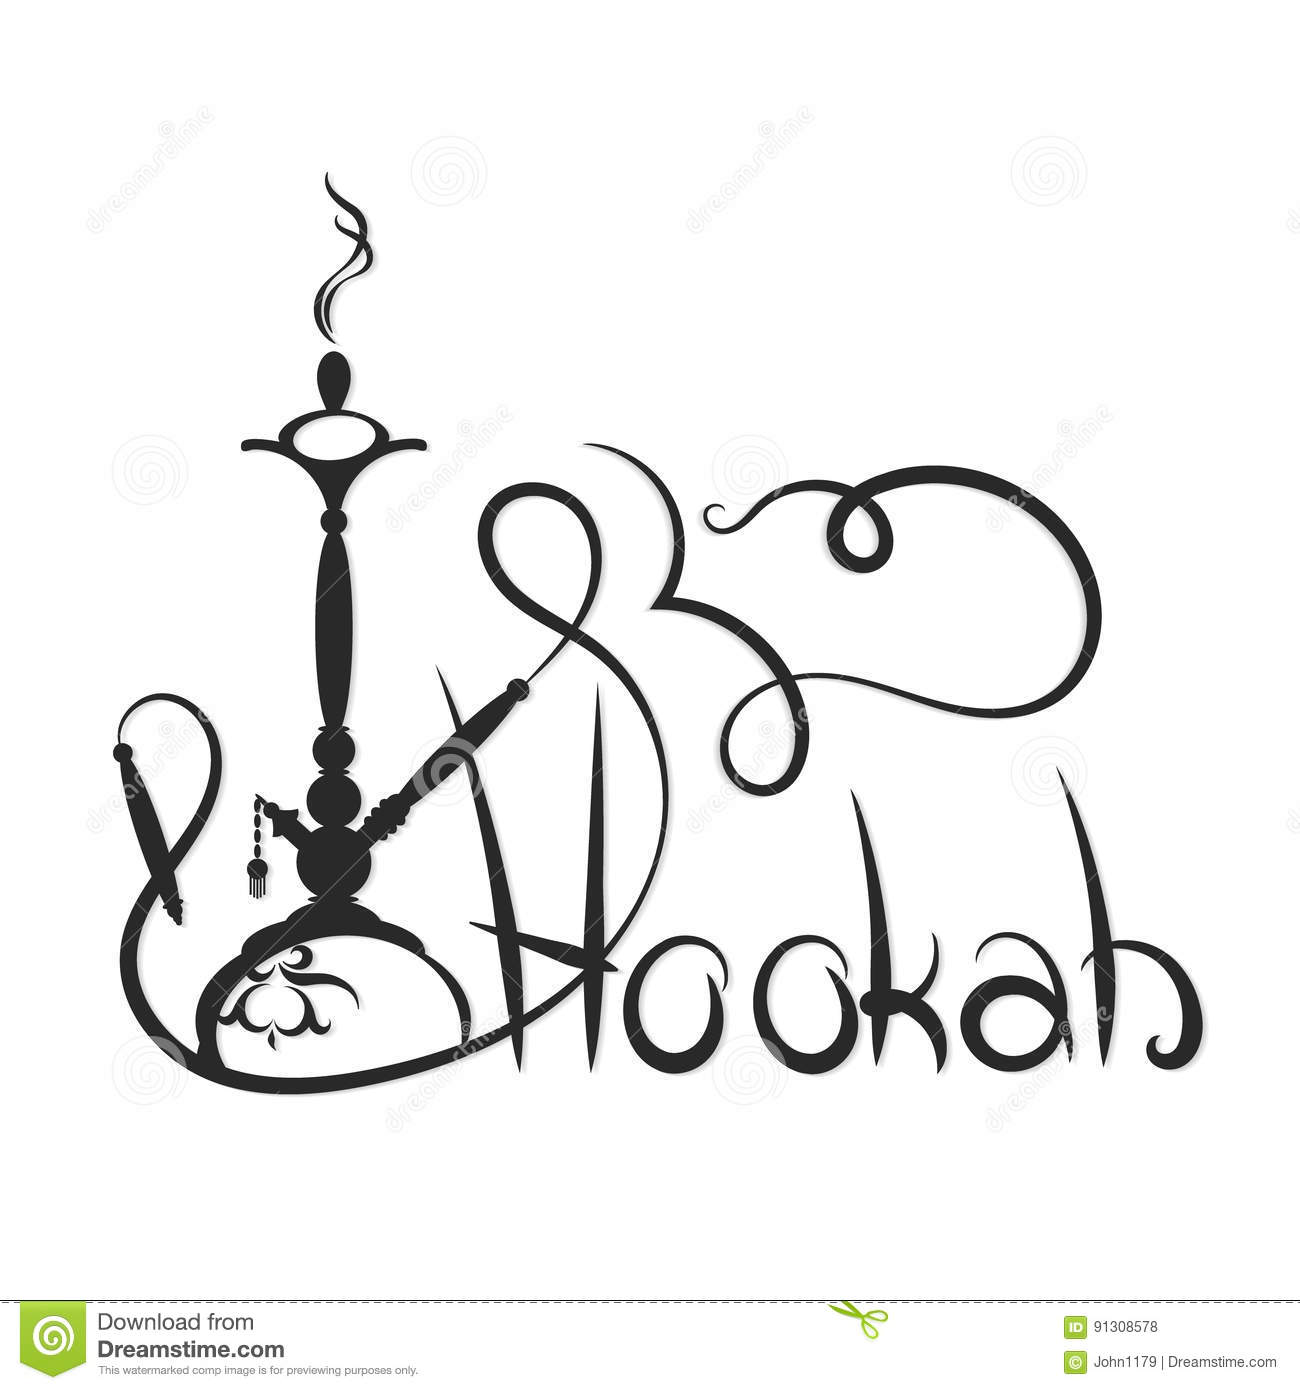 smoke silhouette auto electrical wiring diagramhookah abstract silhouette stock vector image of lounge